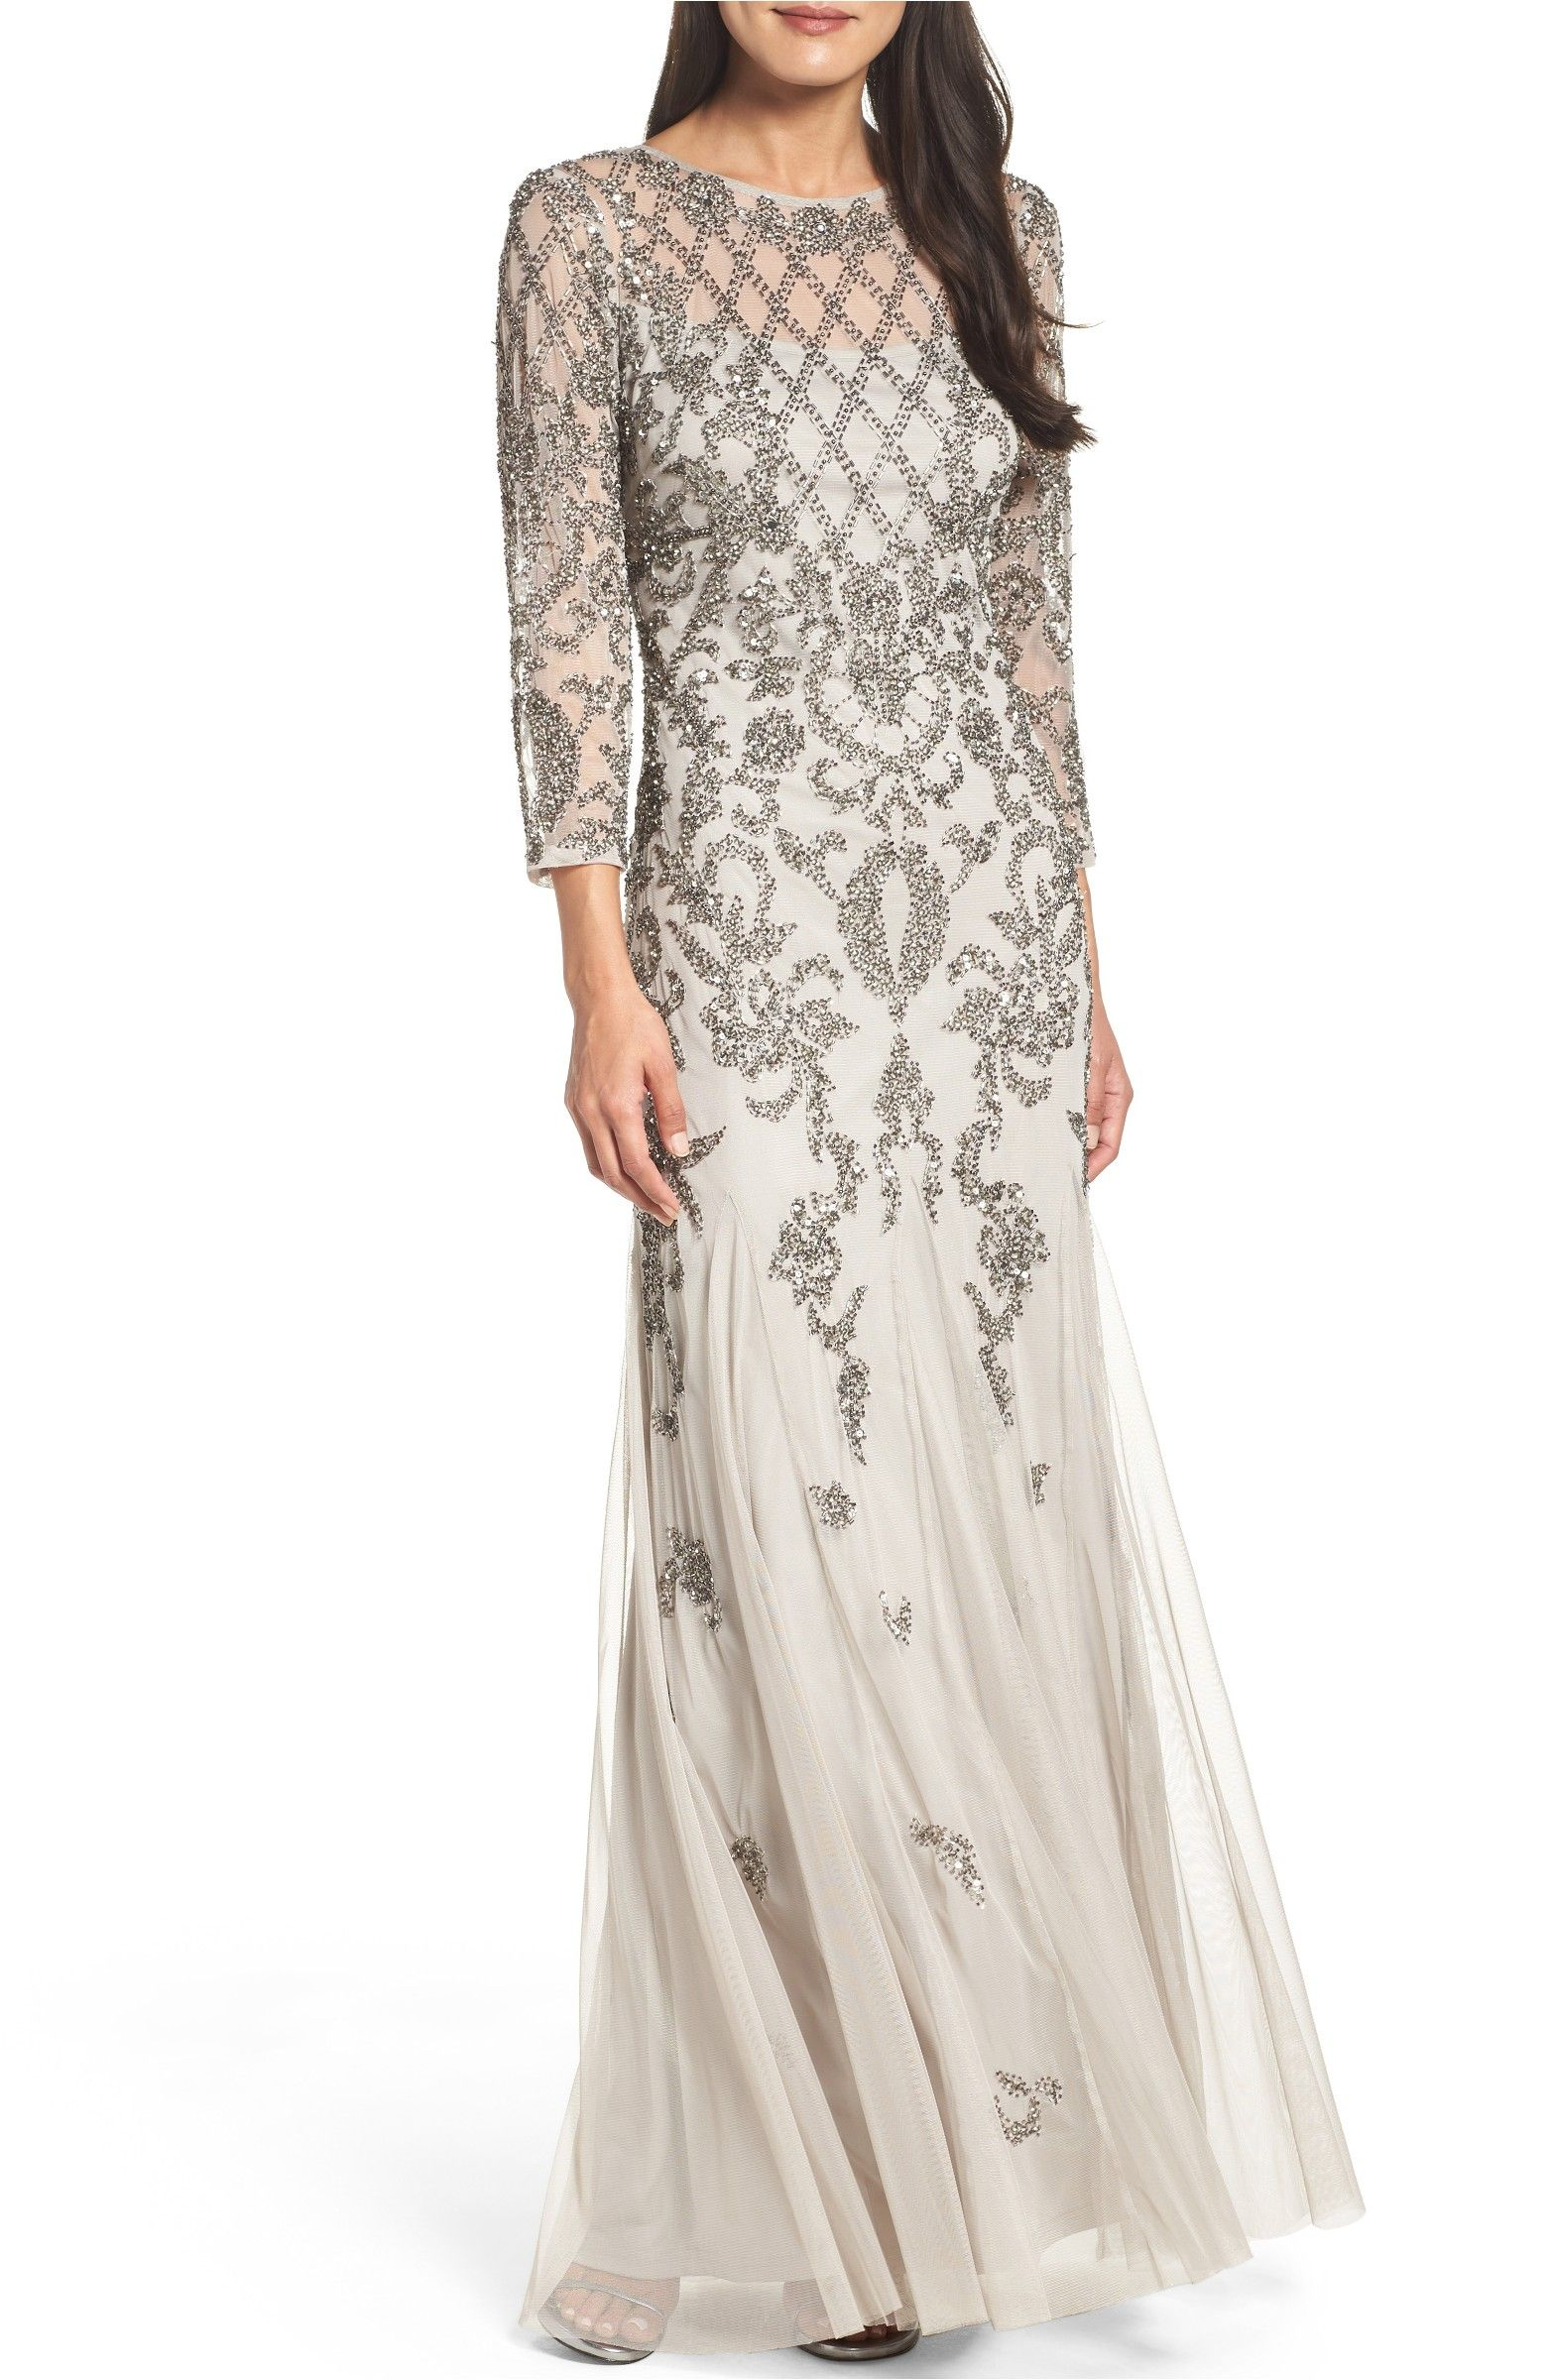 Mother of the bride wedding dresses nordstrom  Main Image  Adrianna Papell Beaded Mesh Gown  gowns  Pinterest